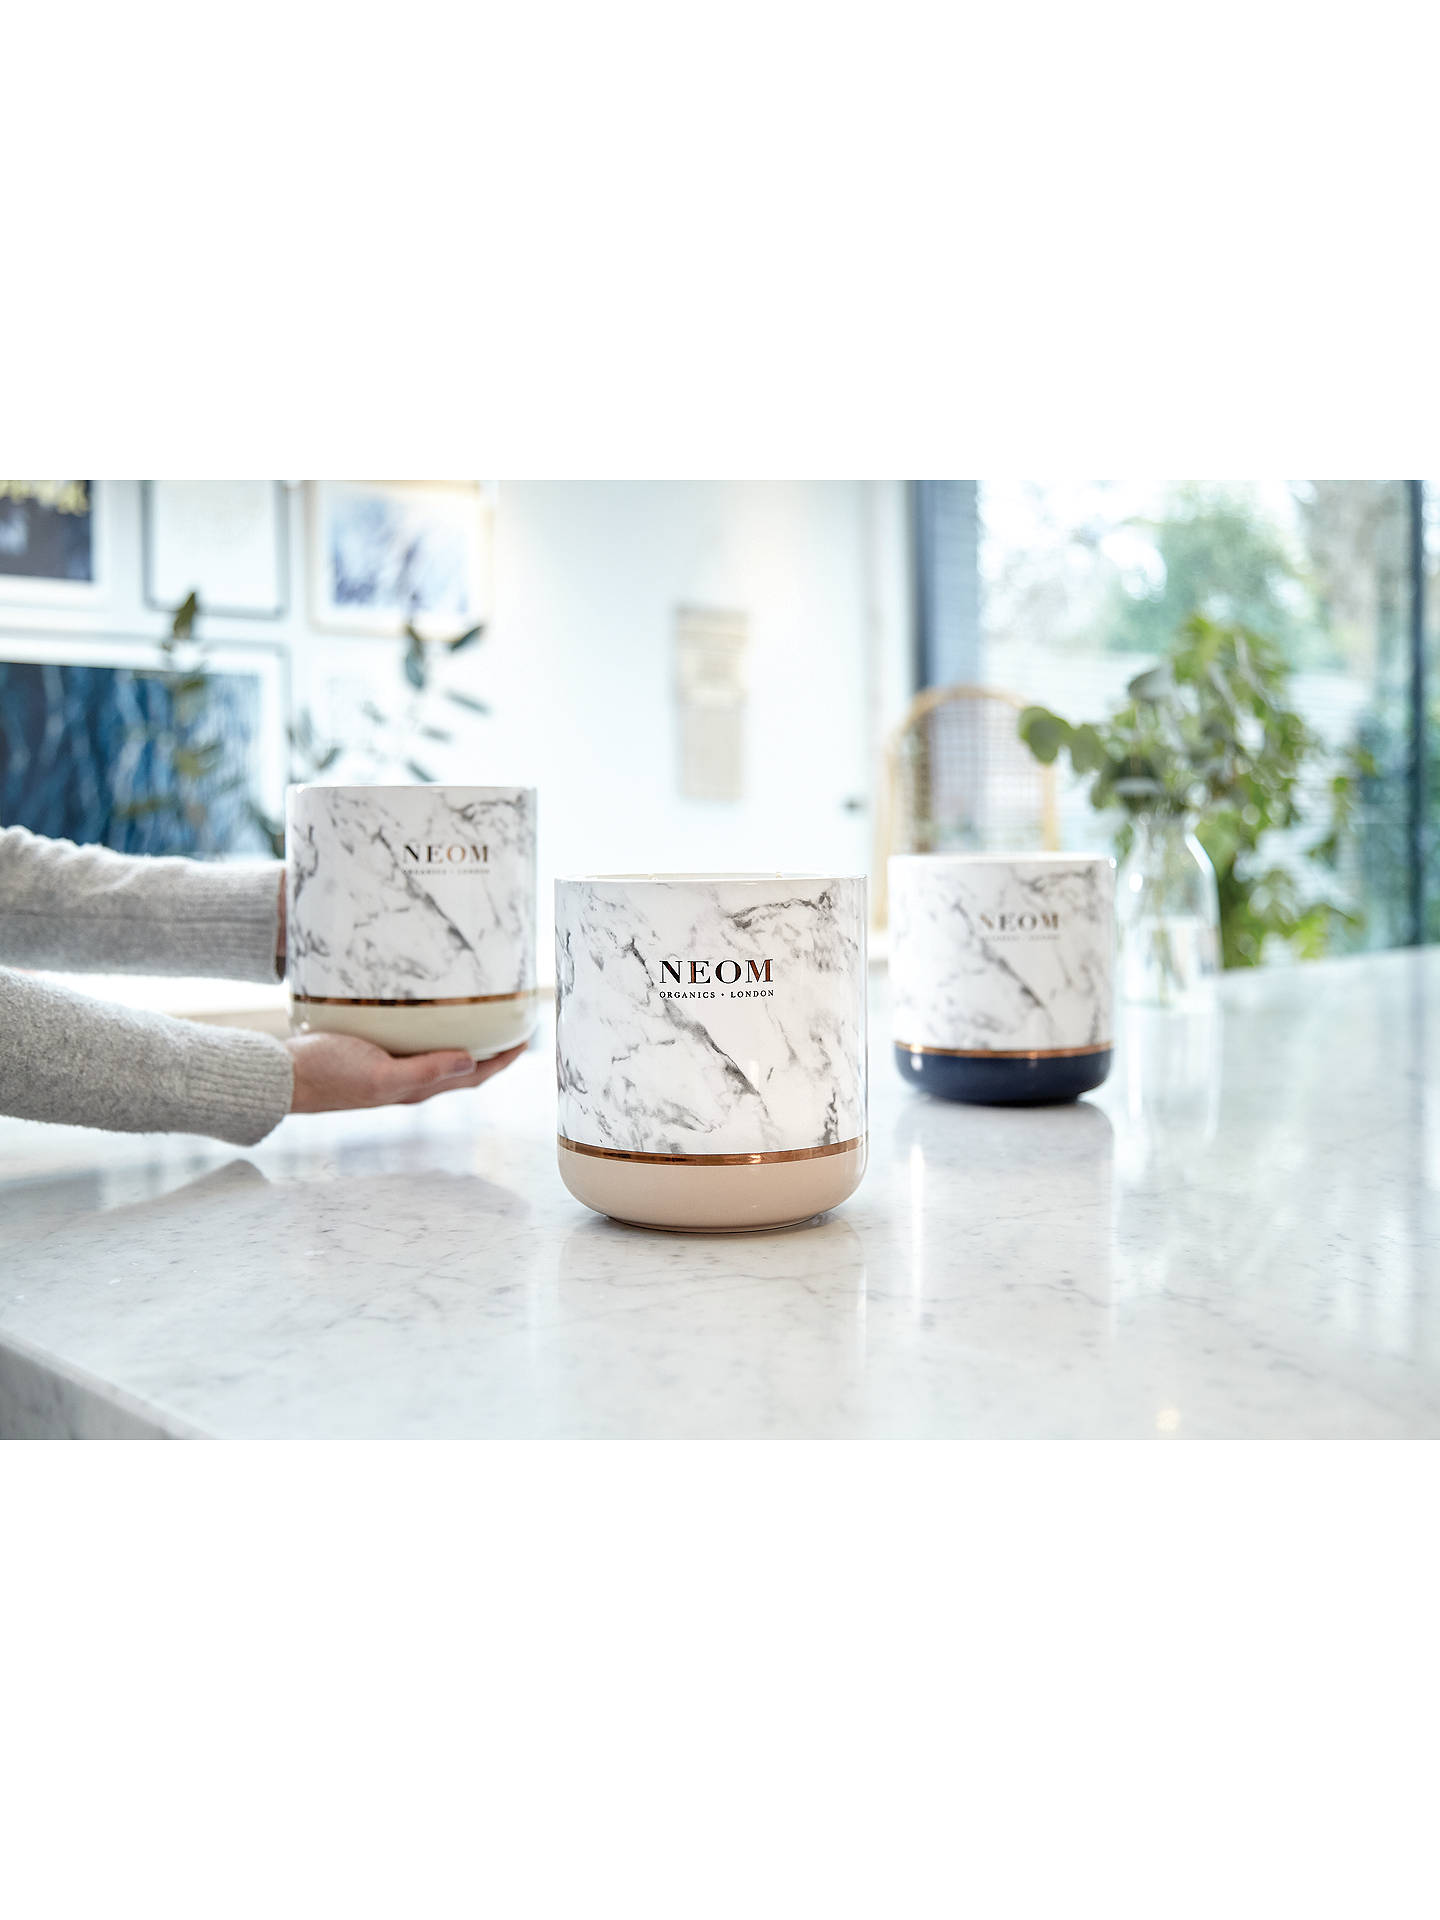 Buy Neom Organics London Ultimate Gifting Happiness Scented Candle Online at johnlewis.com